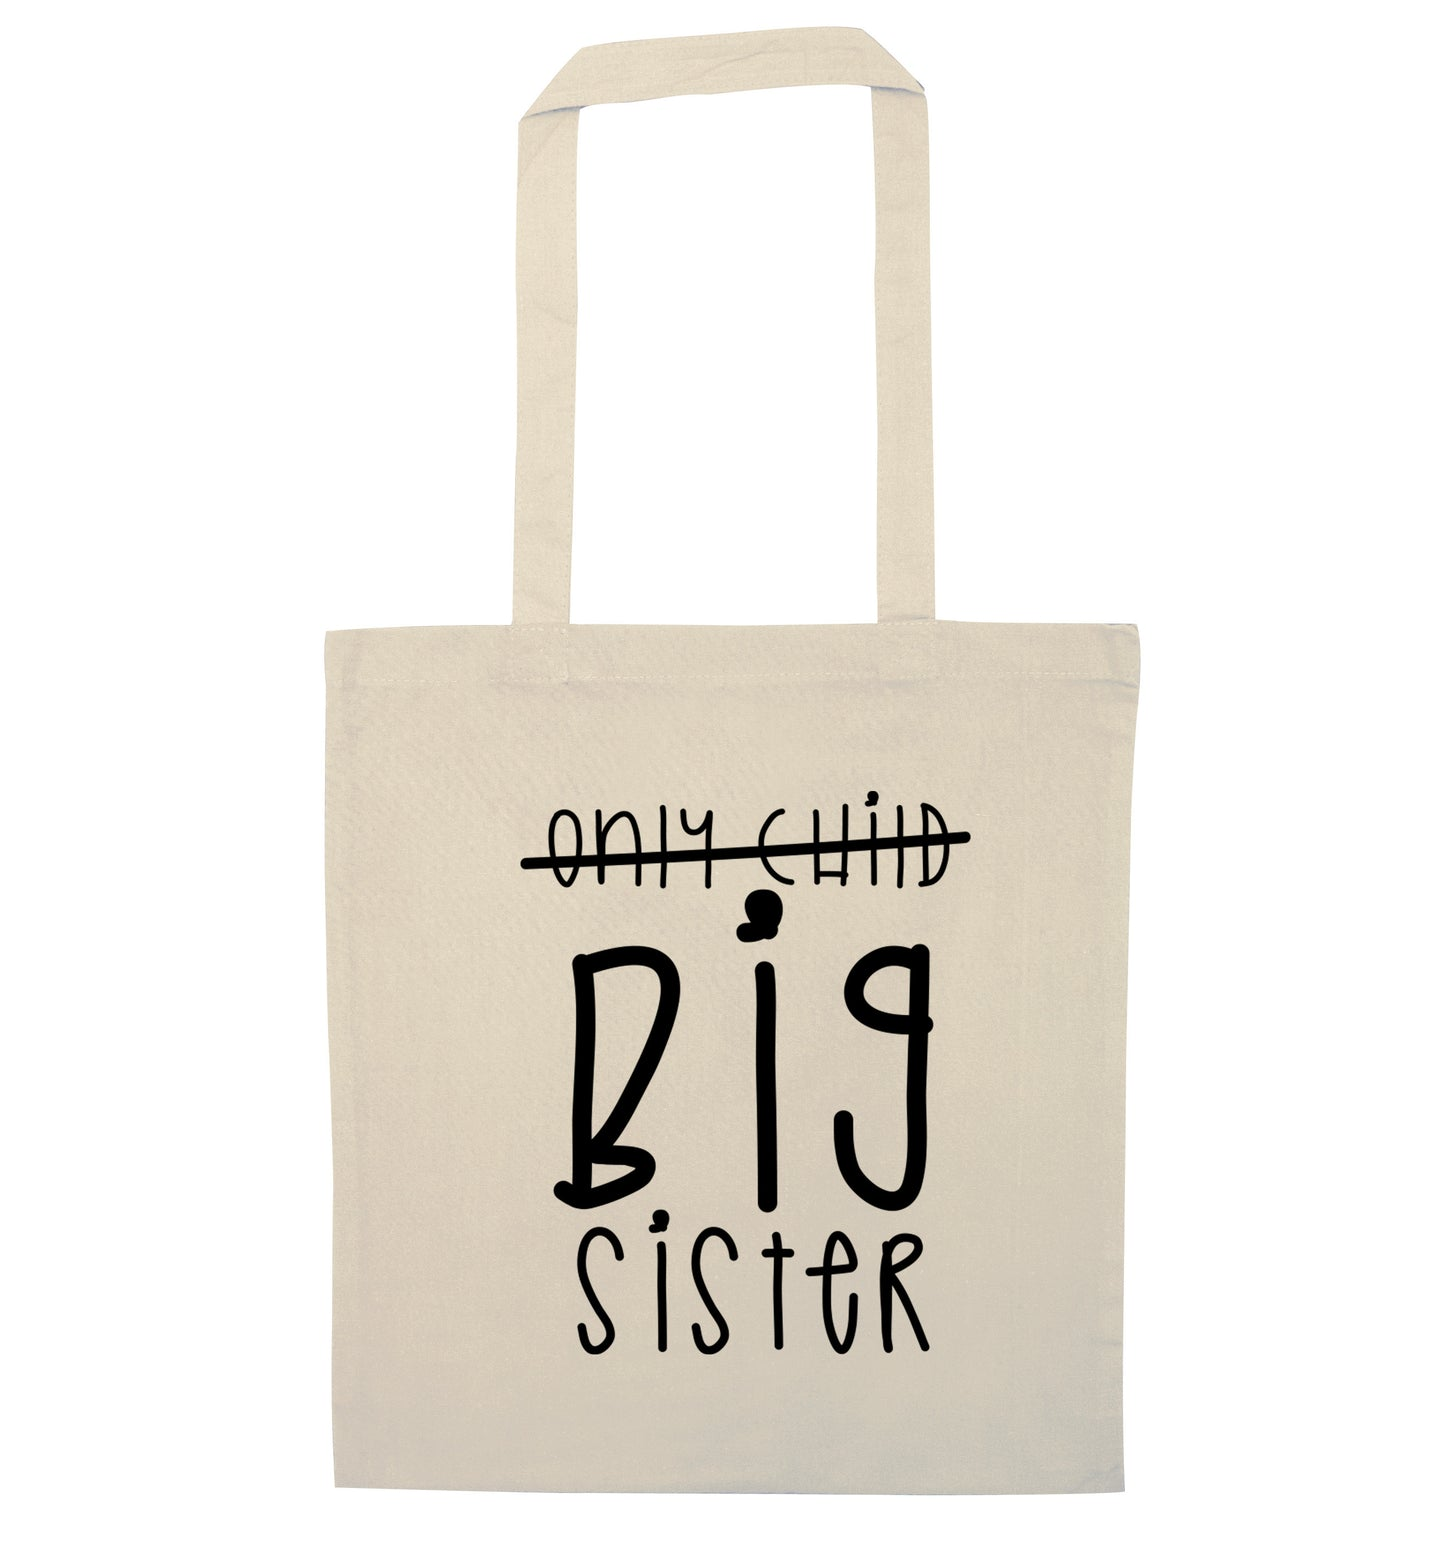 Only child big sister natural tote bag